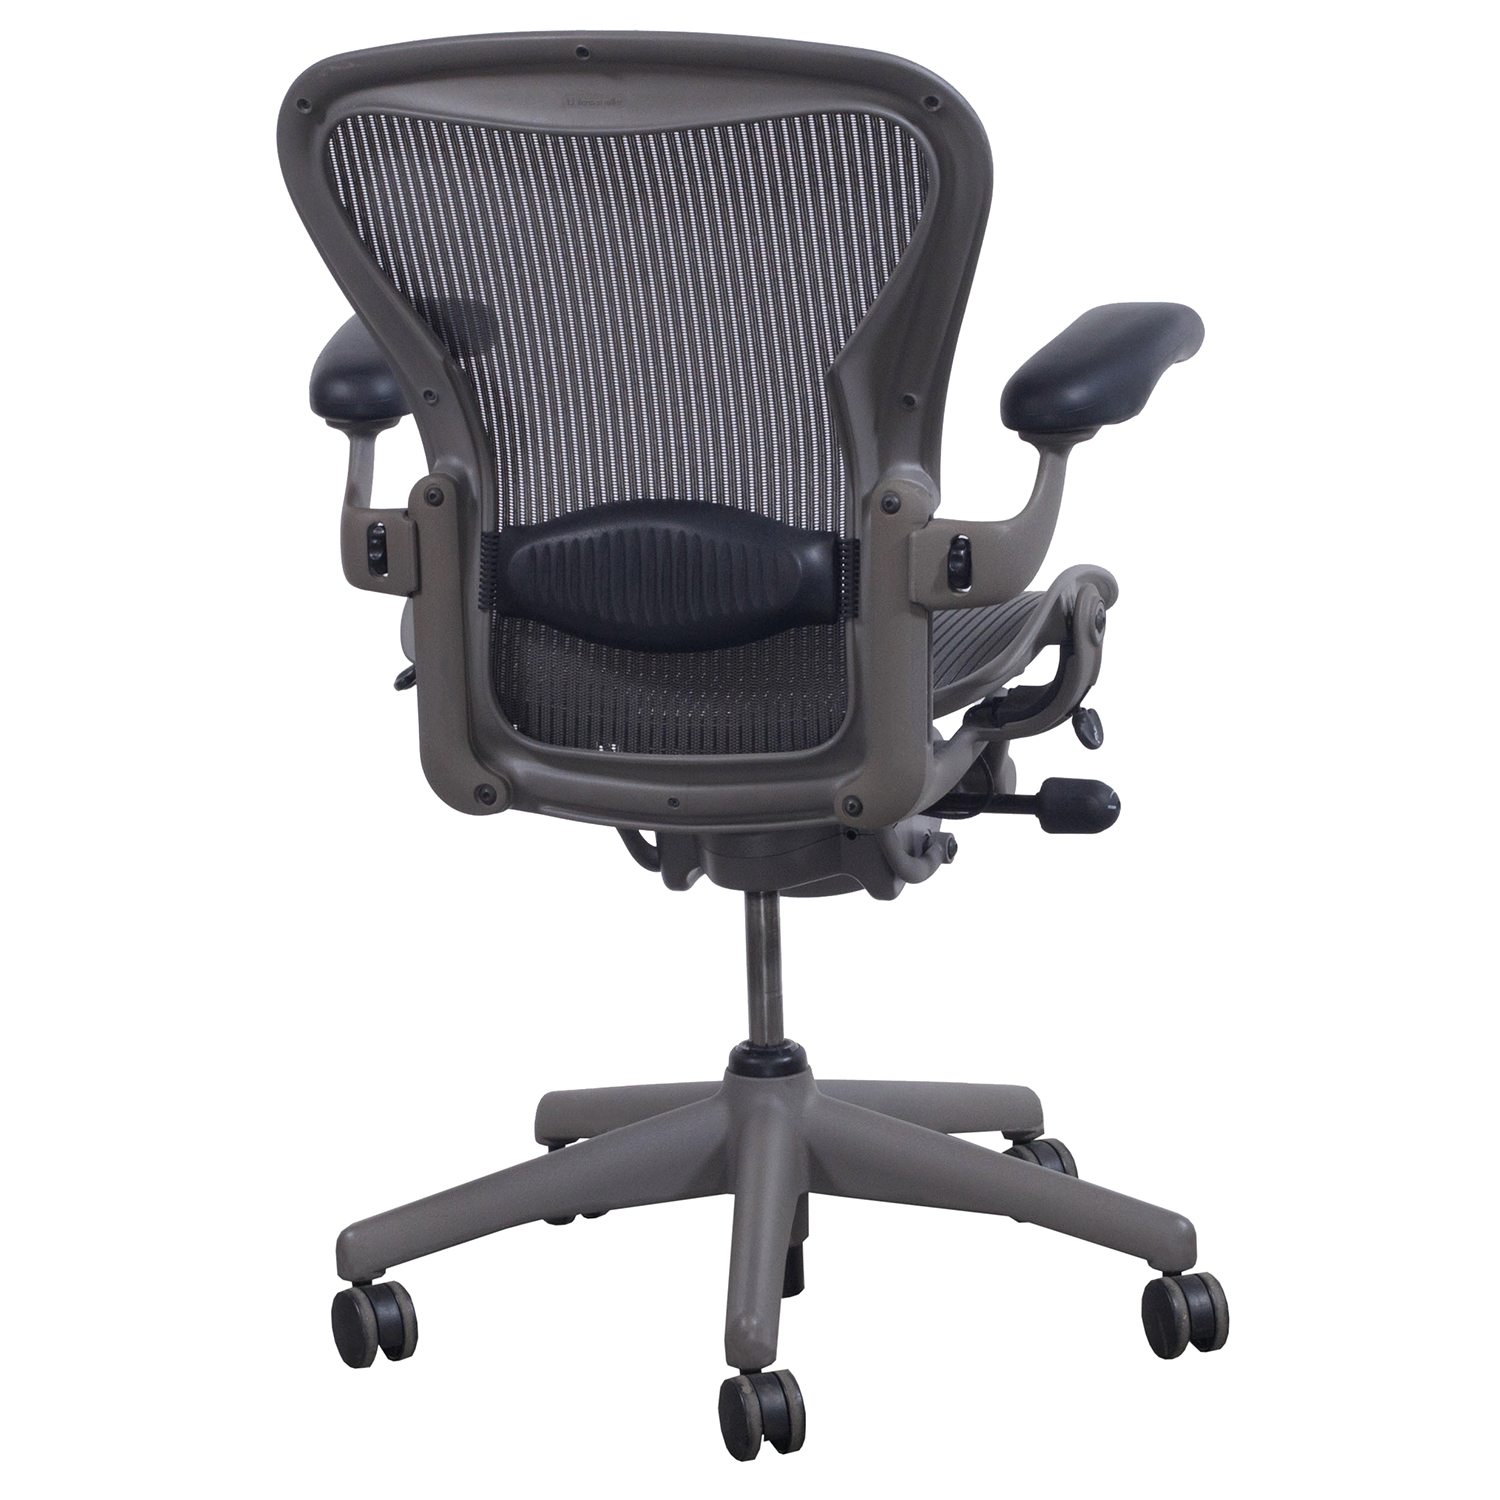 aeron chair accessories wedding chairs hire sydney herman miller used size b task lead